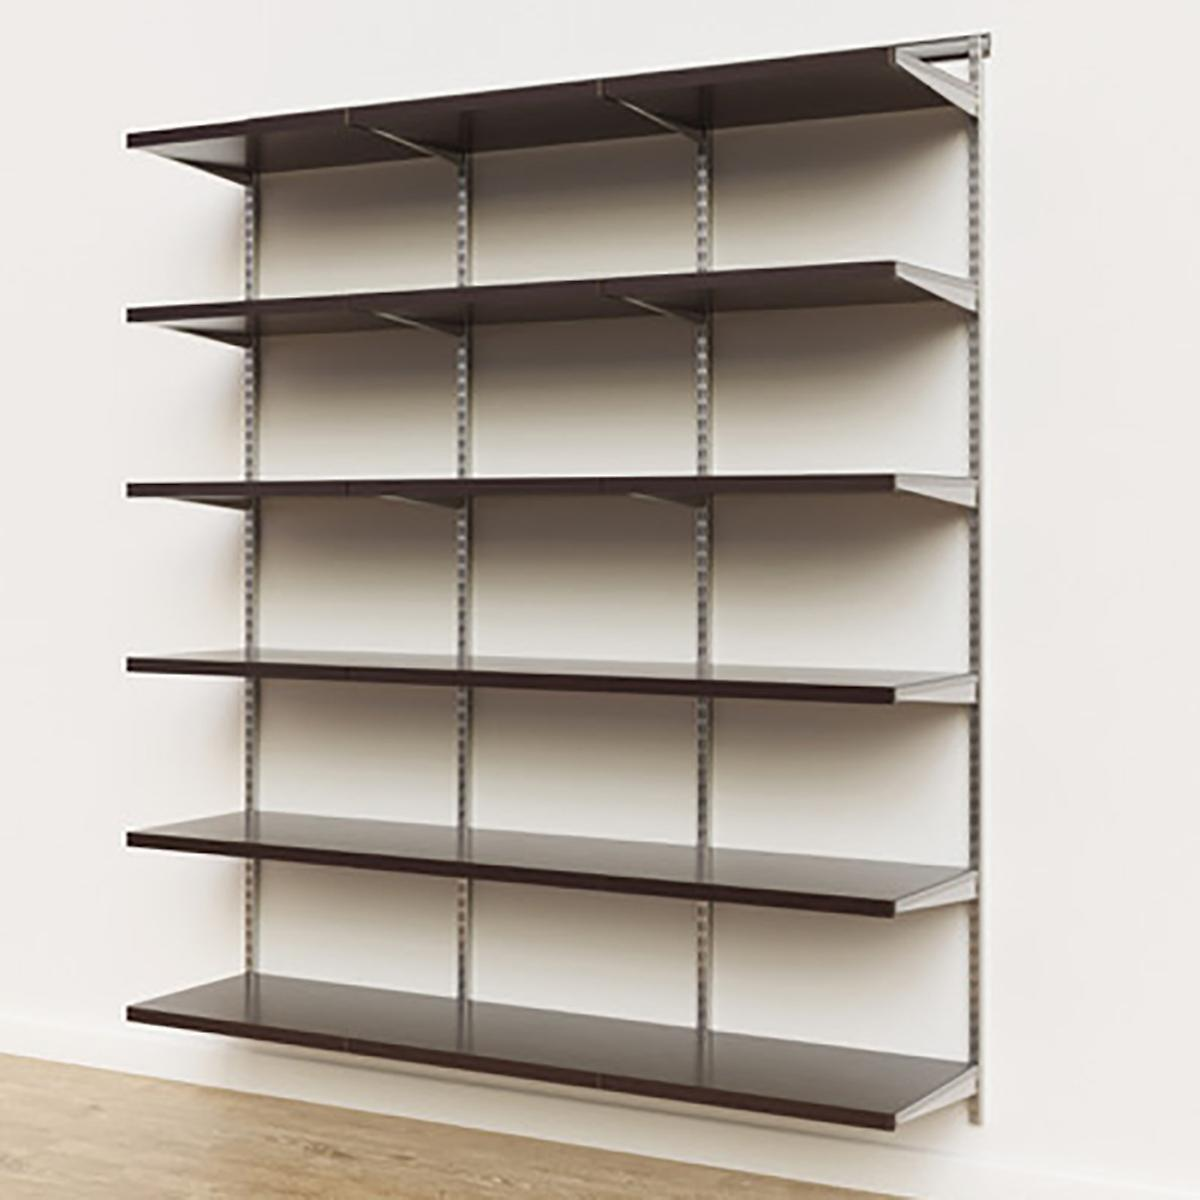 Elfa Décor 6' Platinum & Walnut Basic Shelving Units for Anywhere